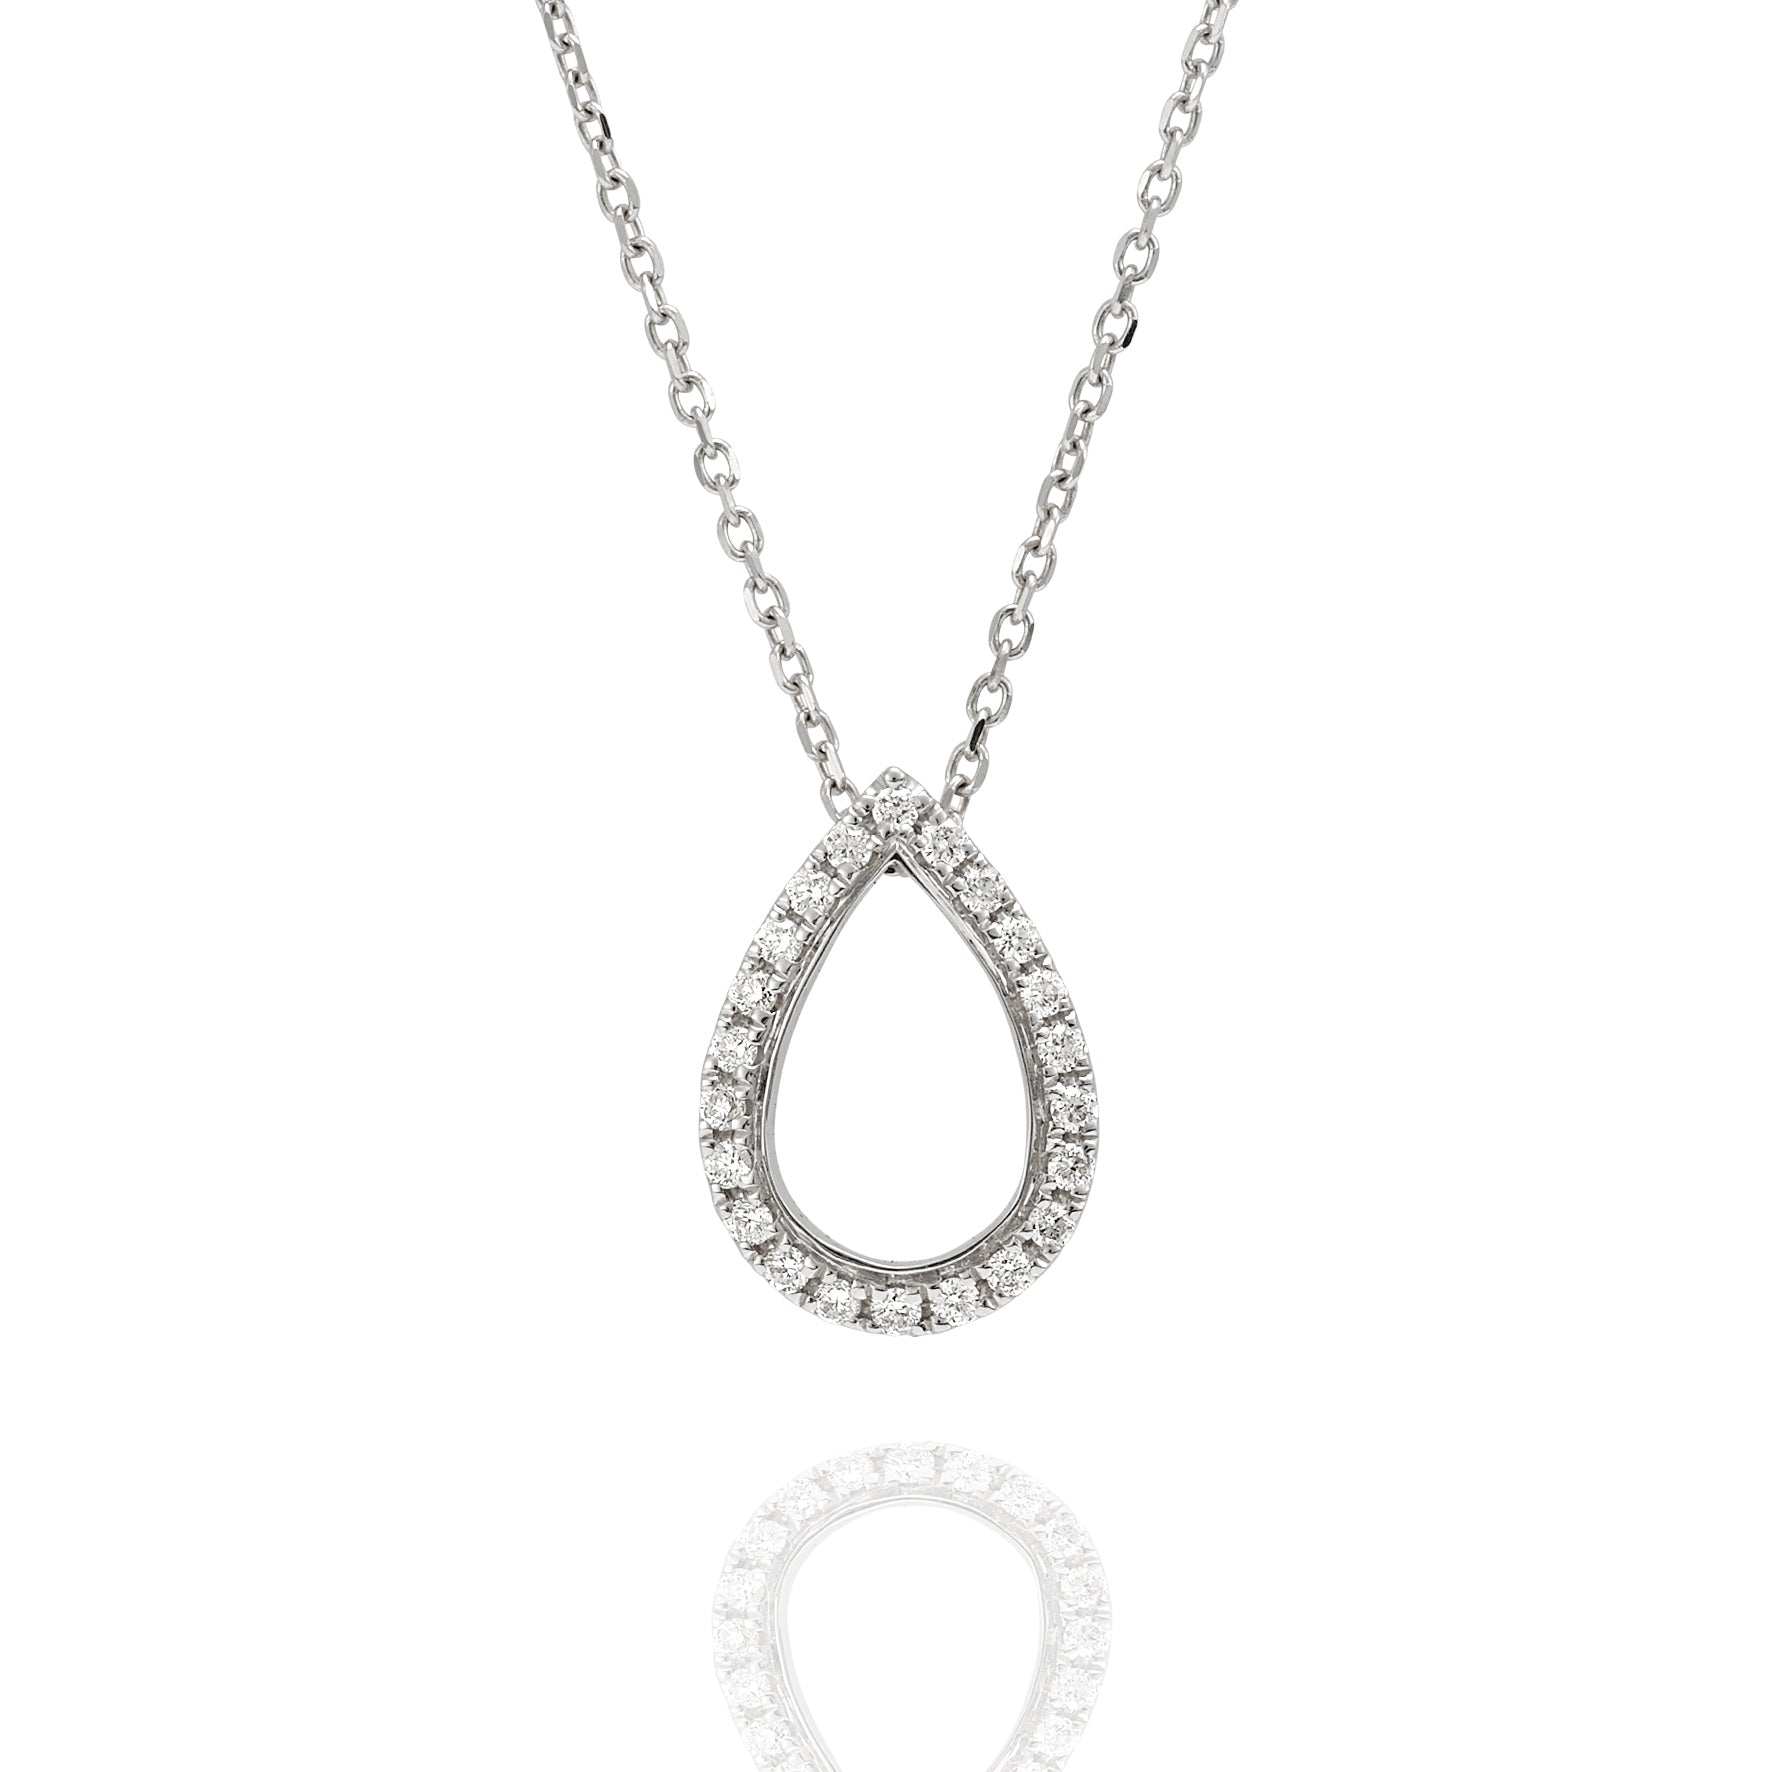 18ct white gold diamond pear shape pendant including chain